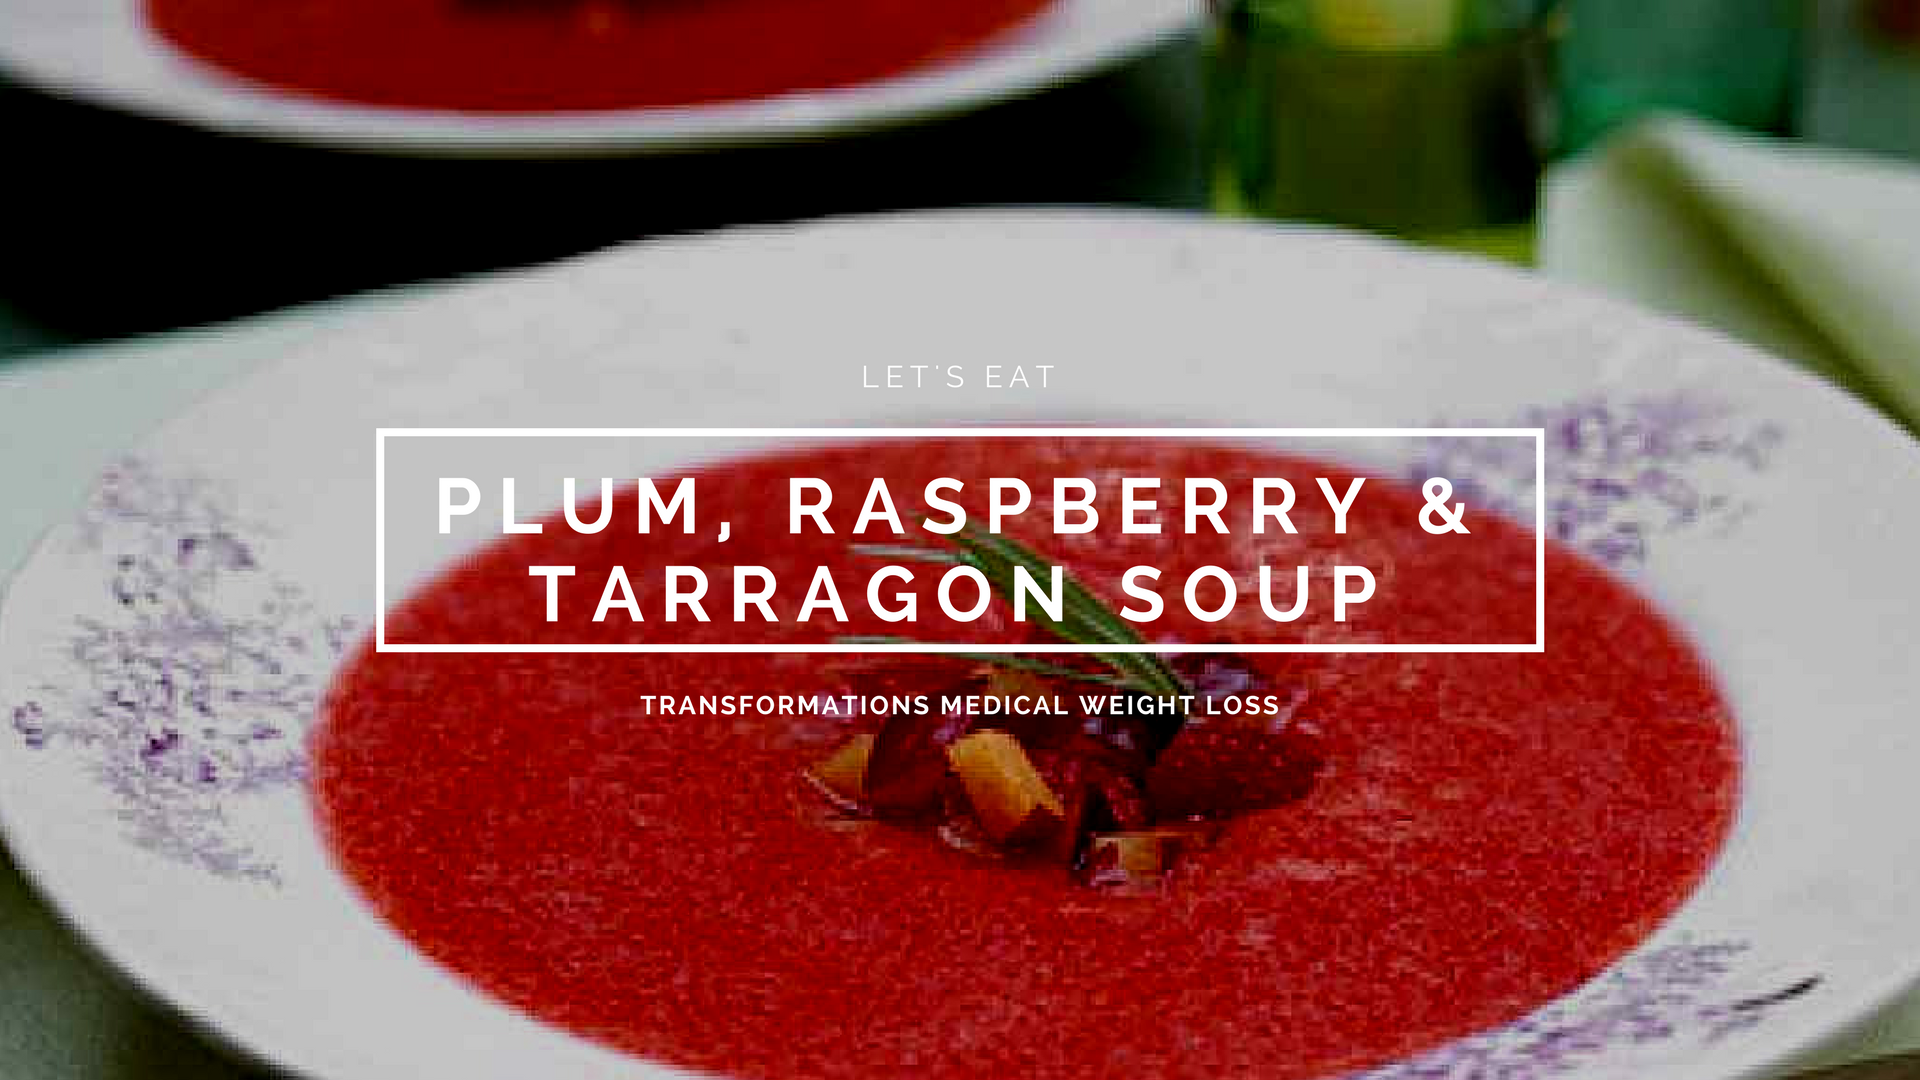 Plum, Raspberry, and Tarragon Soup